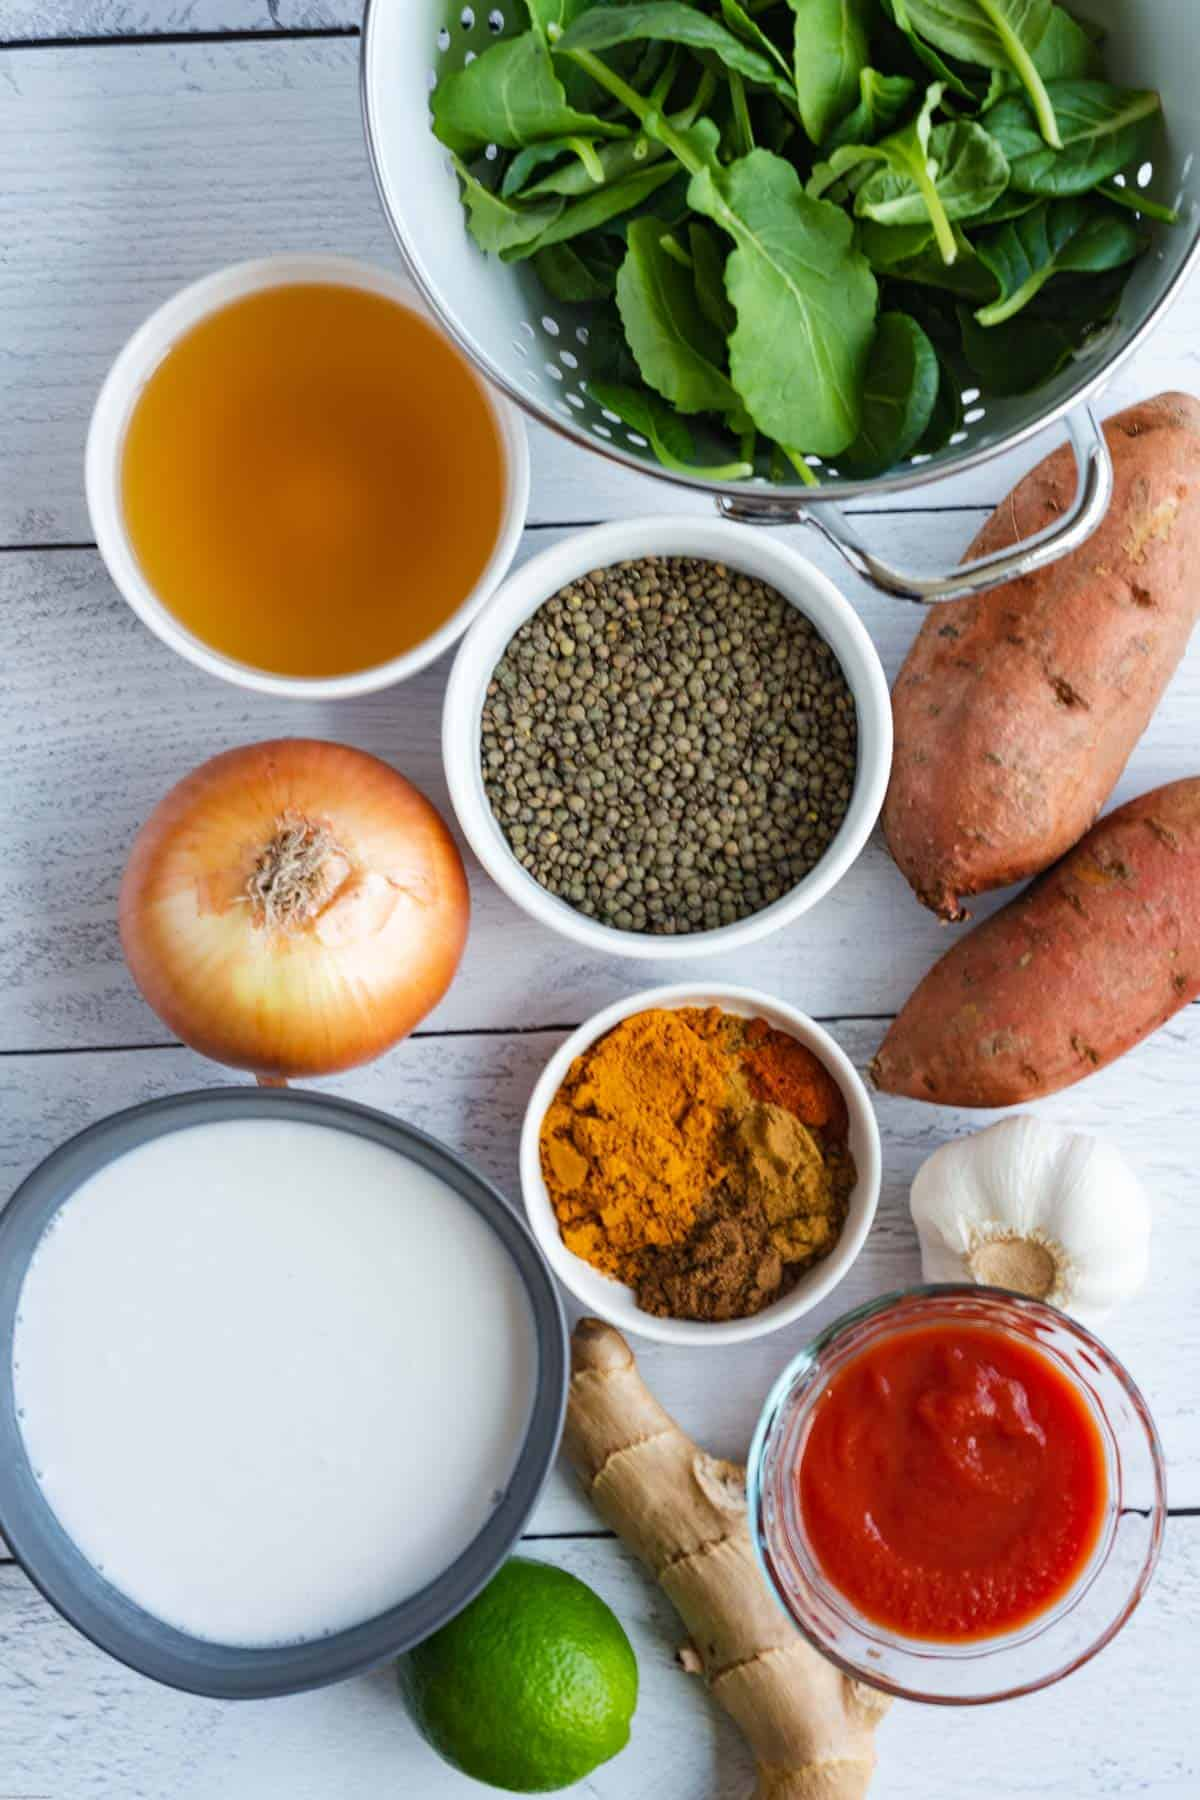 Ingredients: spinach, lime, tomato sauce, ginger, garlic, onion, lentils, sweet potato, coconut milk, veggie broth, and spices.